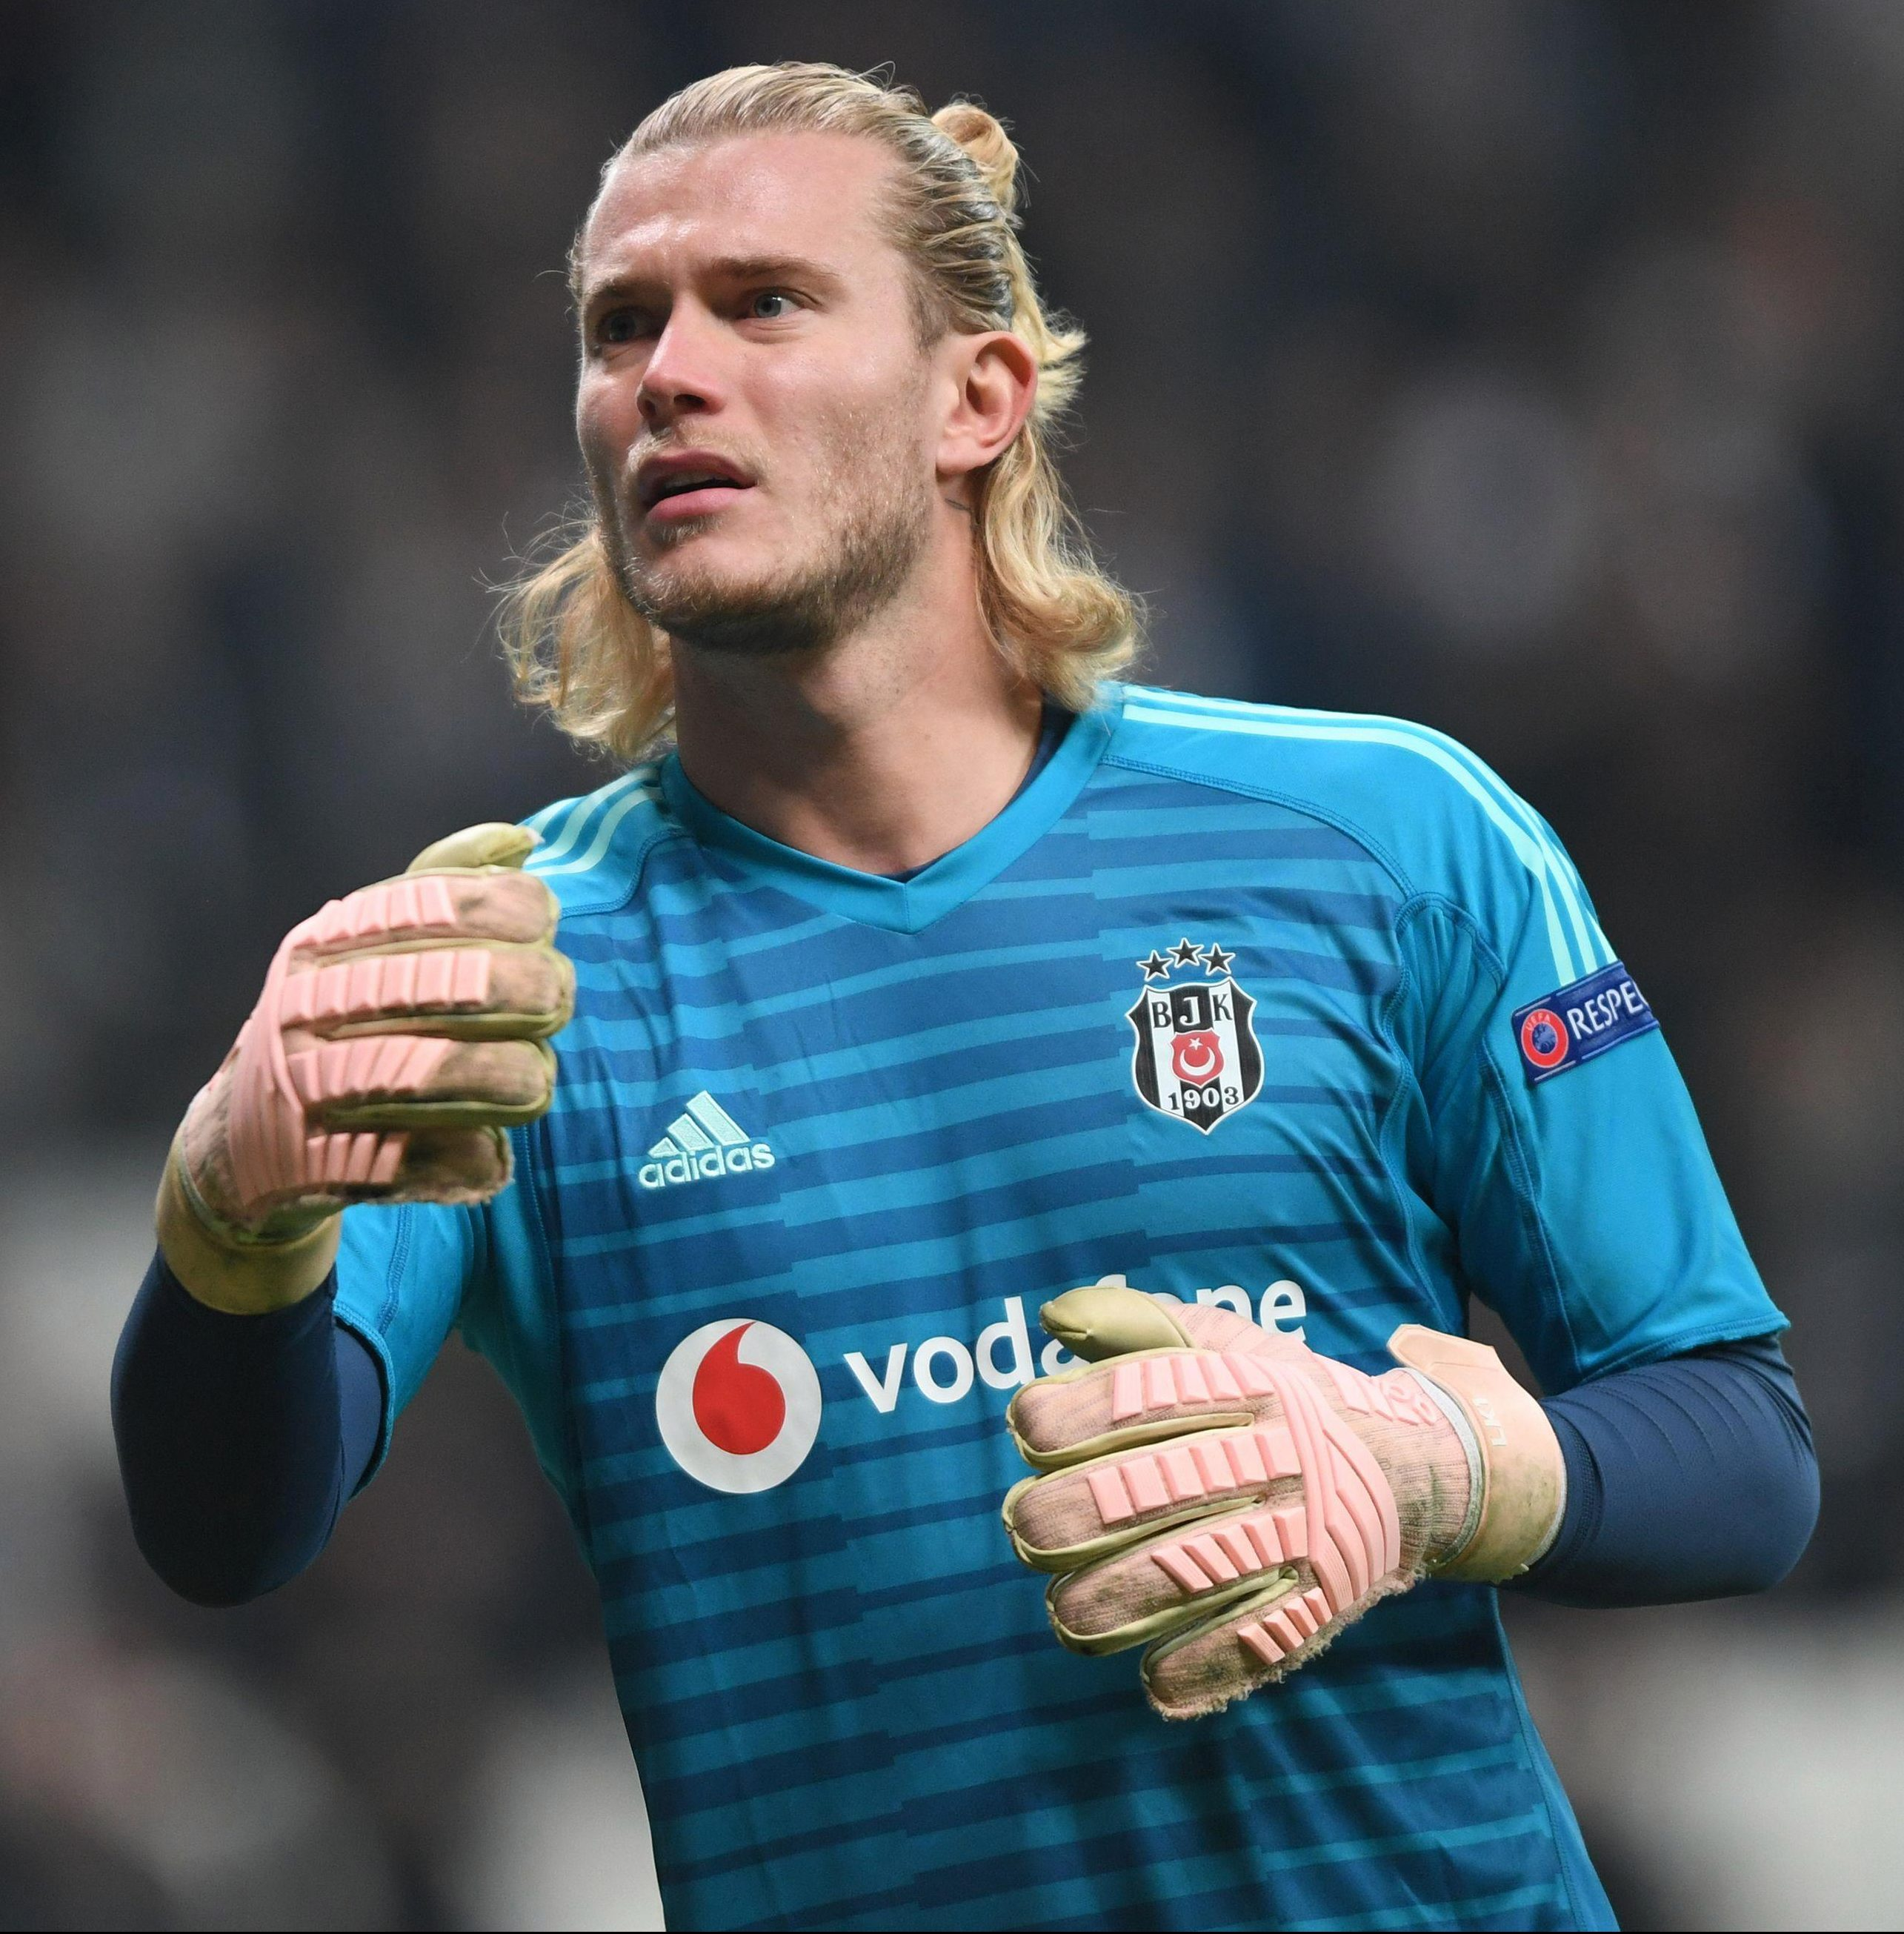 German keeper Loris Karius was shipped out on loan after two costly errors for Liverpool against Real - and has since made big mistakes for Besitkas too